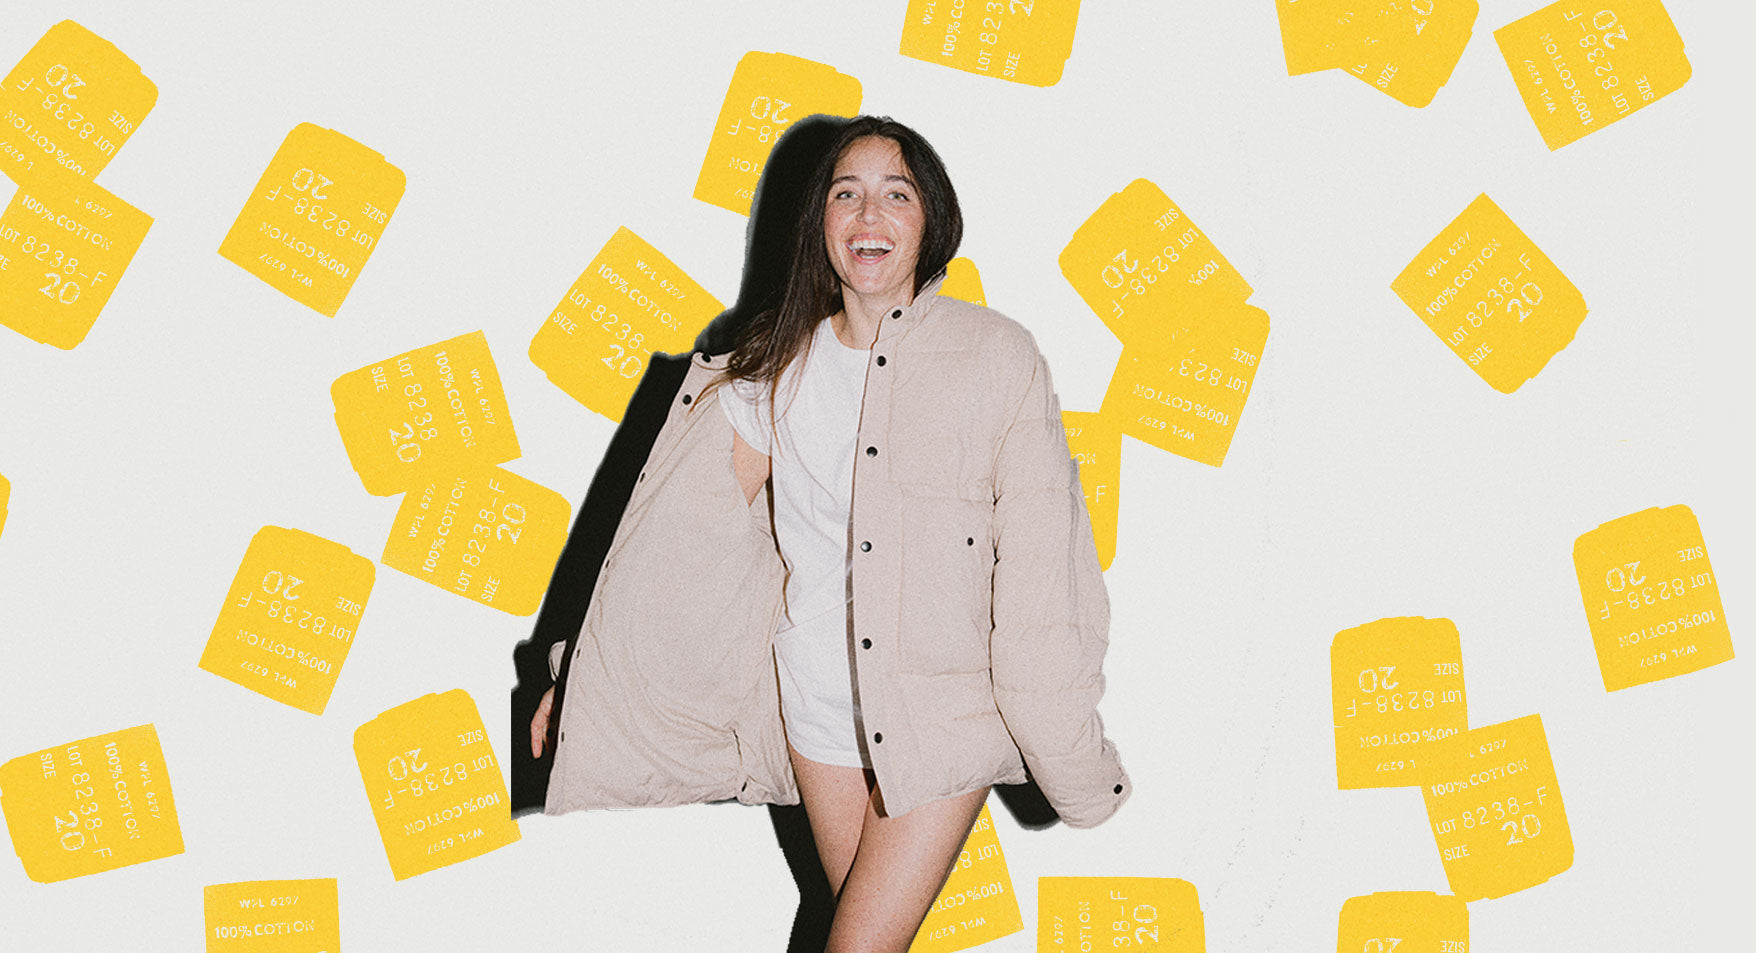 Big Favorite: Jordyn Amoroso, Chief Brand Officer of Clove